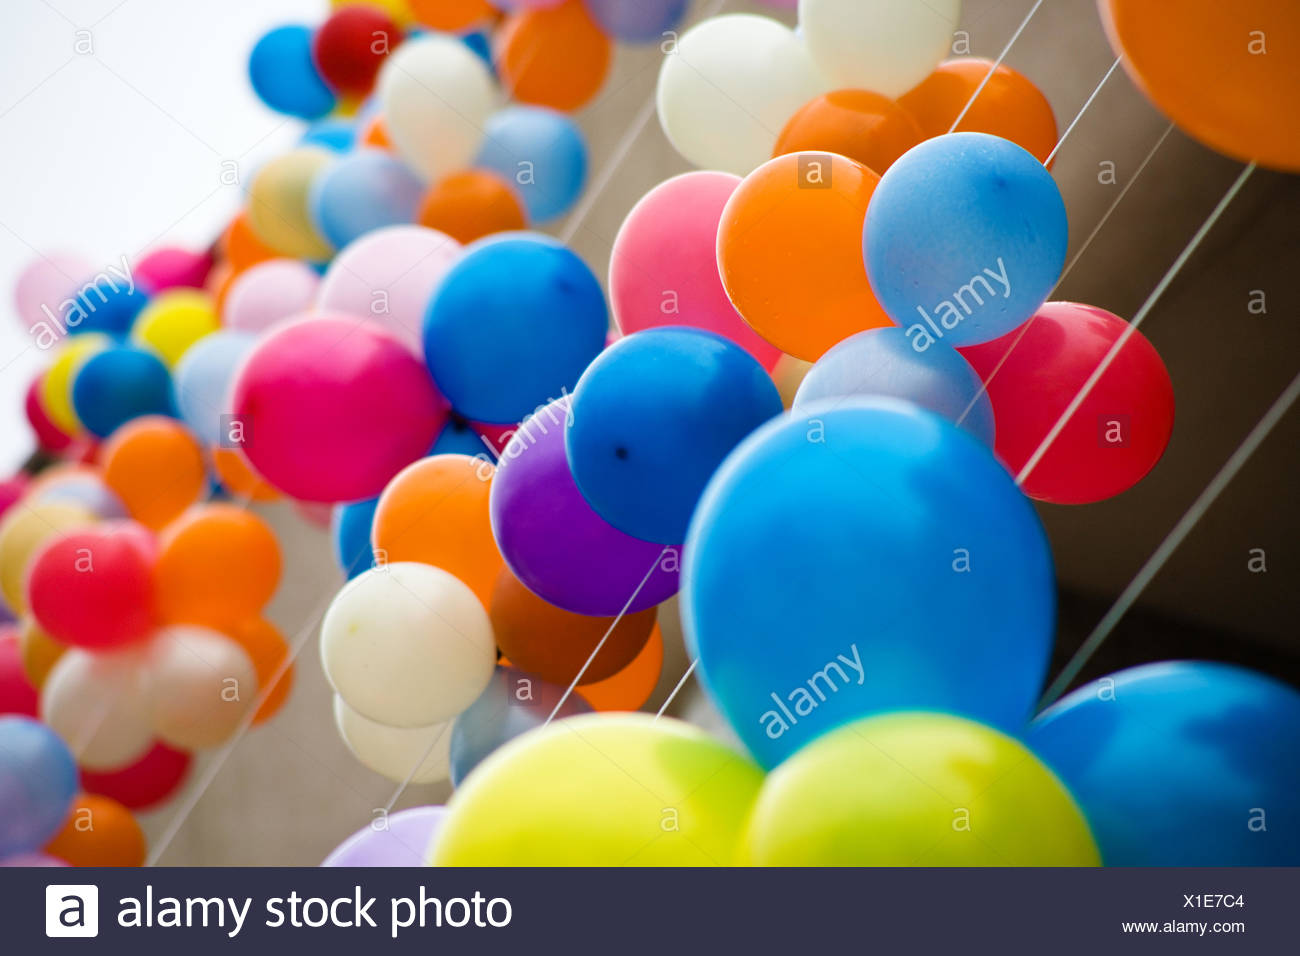 Blue Green Party Celebration Balloon Decoration Different